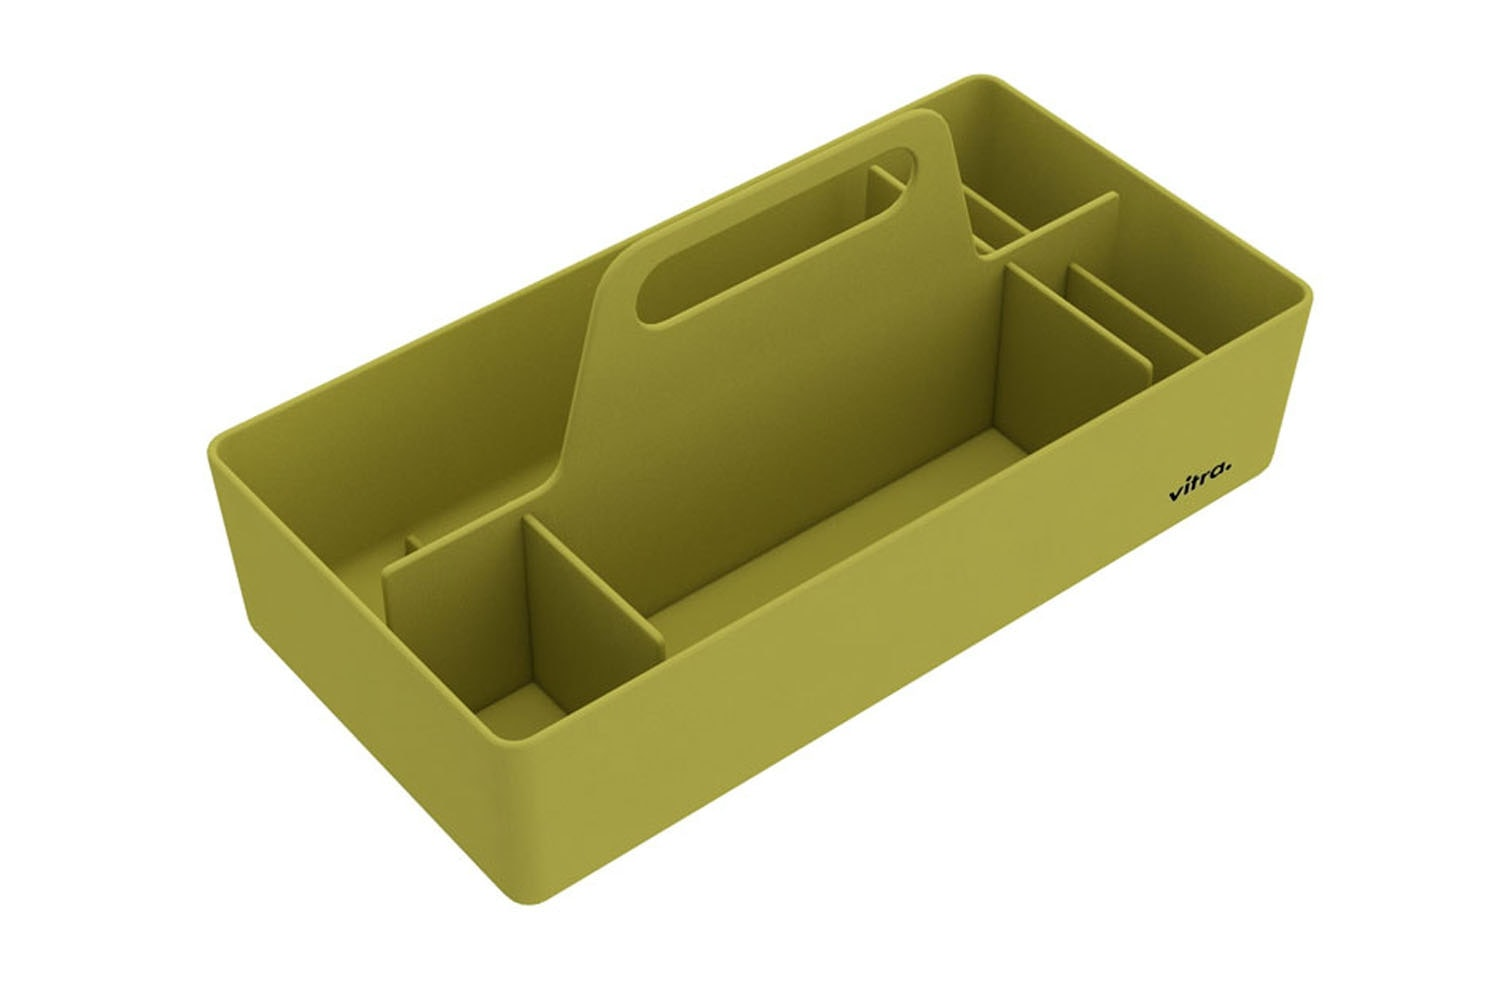 Toolbox by Arik Levy for Vitra